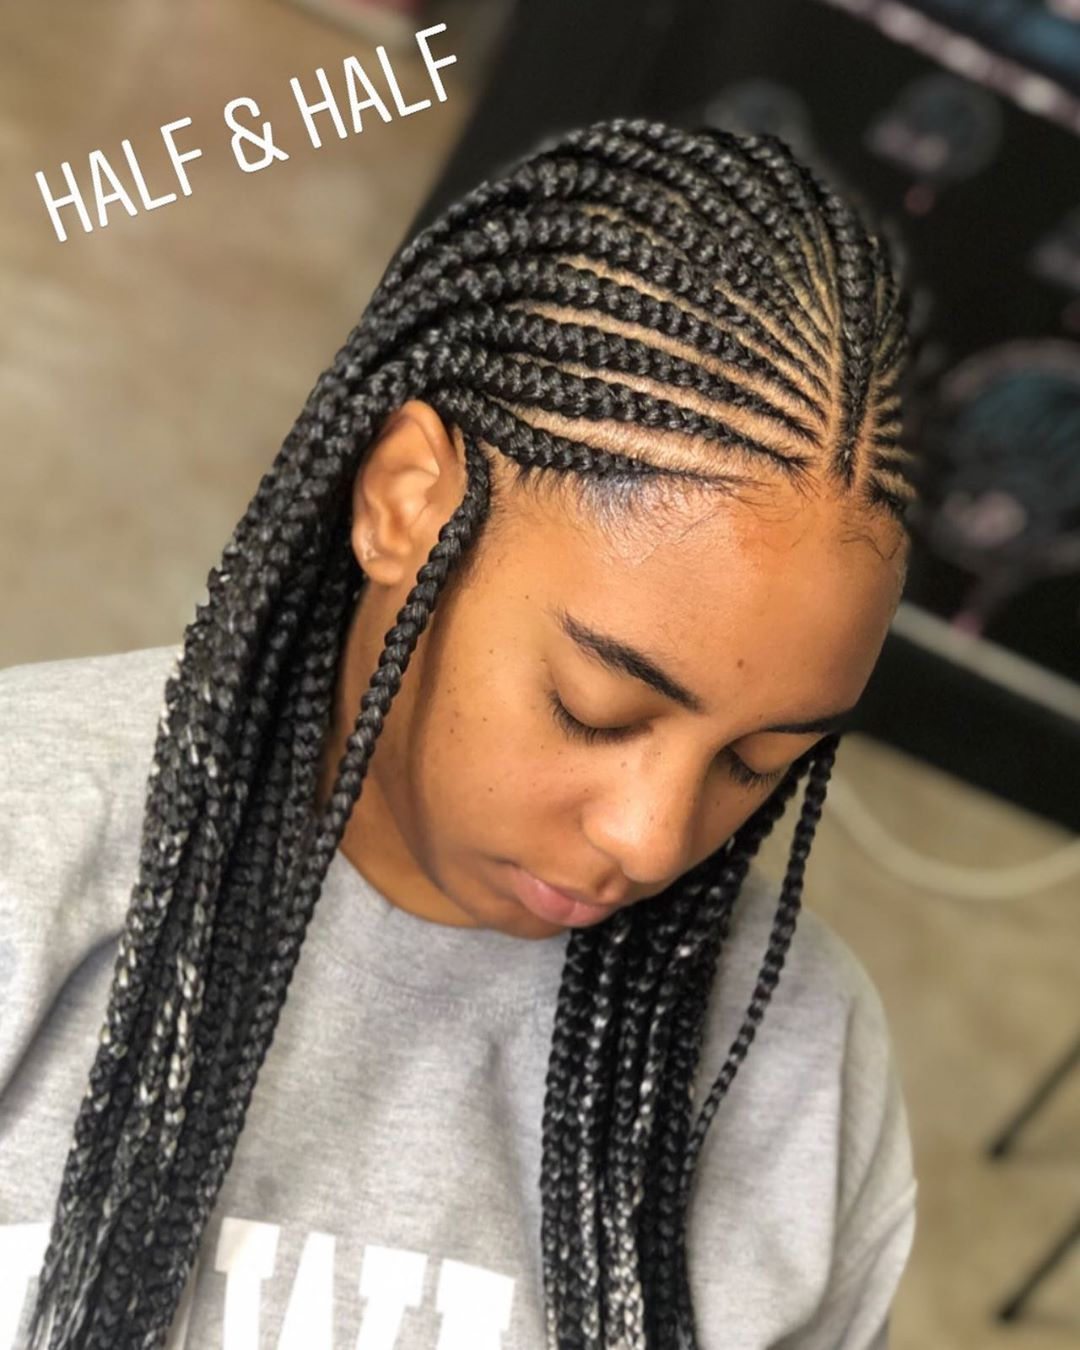 Cutest Hairstyles For Little Black Girls Little Girls Hairstyles African American G Cool Braid Hairstyles Black Kids Hairstyles Black Girl Braided Hairstyles